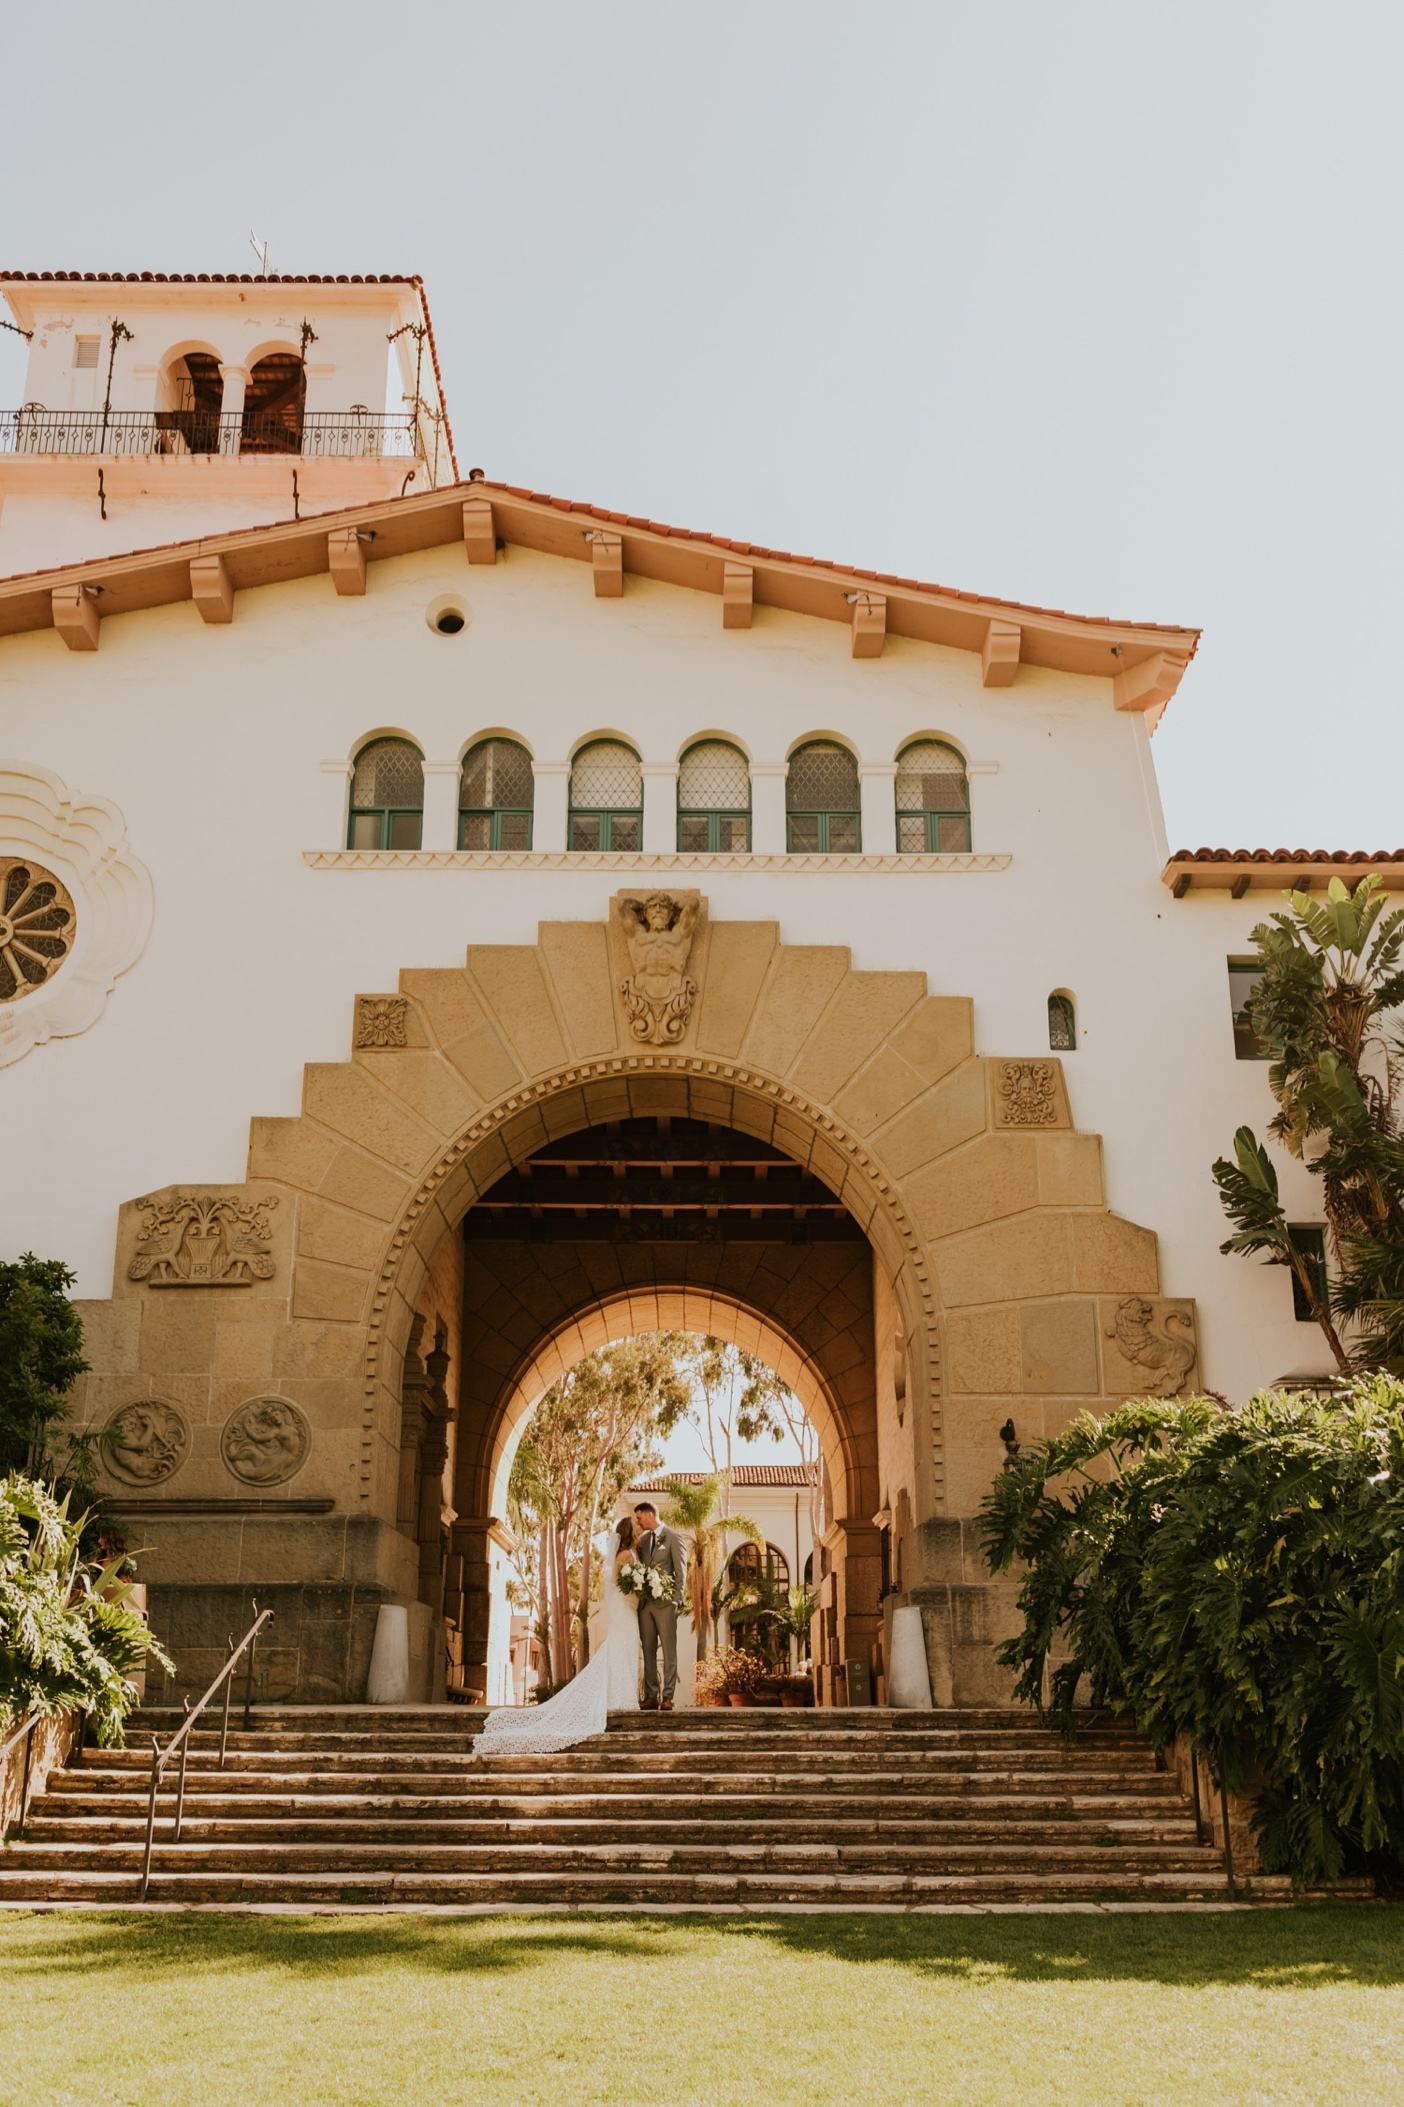 Santa Barbara Courthouse Wedding. Bride and Groom portrait on steps under arched entryway.